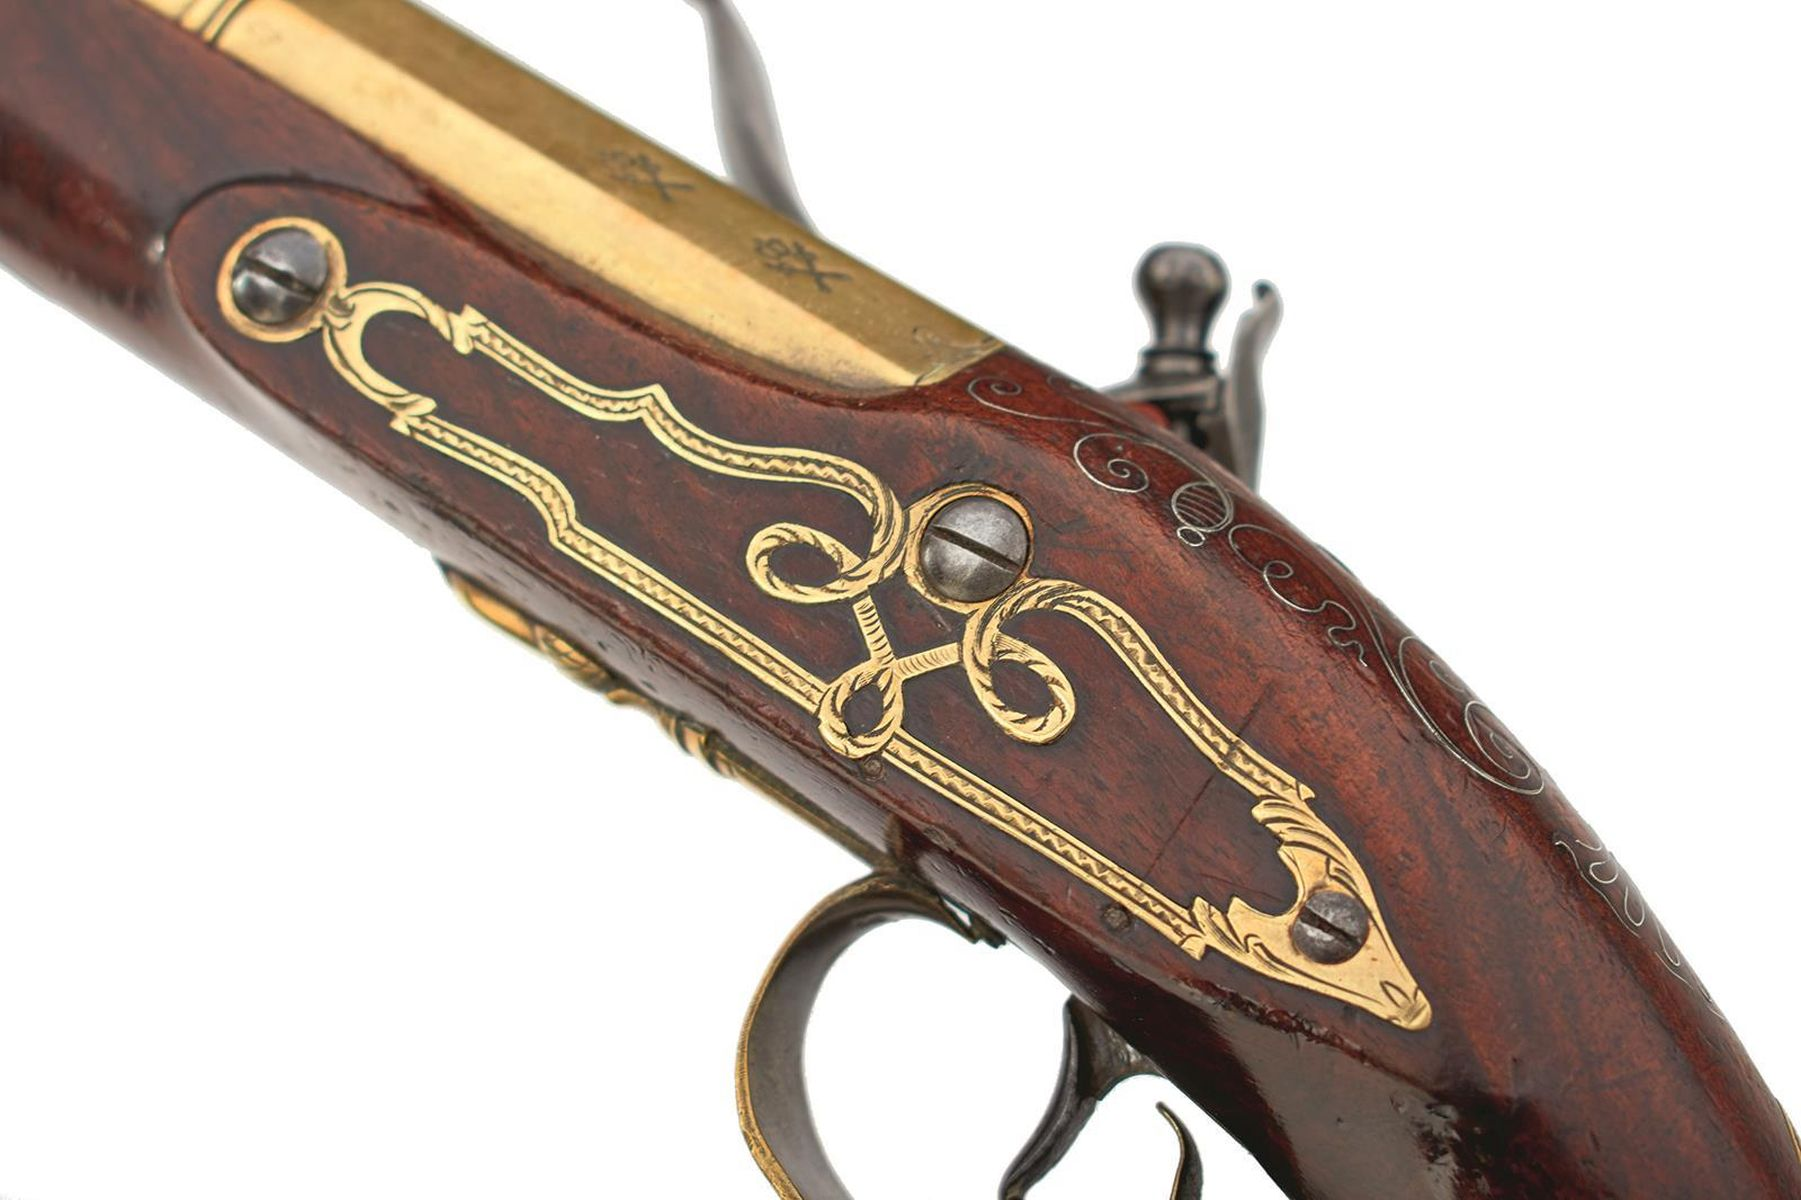 A CASED PAIR OF 6-BORE FLINTLOCK BRASS BARRELLED BLUNDERBUSS PISTOLS BY TAYLER, 9inch four stage - Image 6 of 25